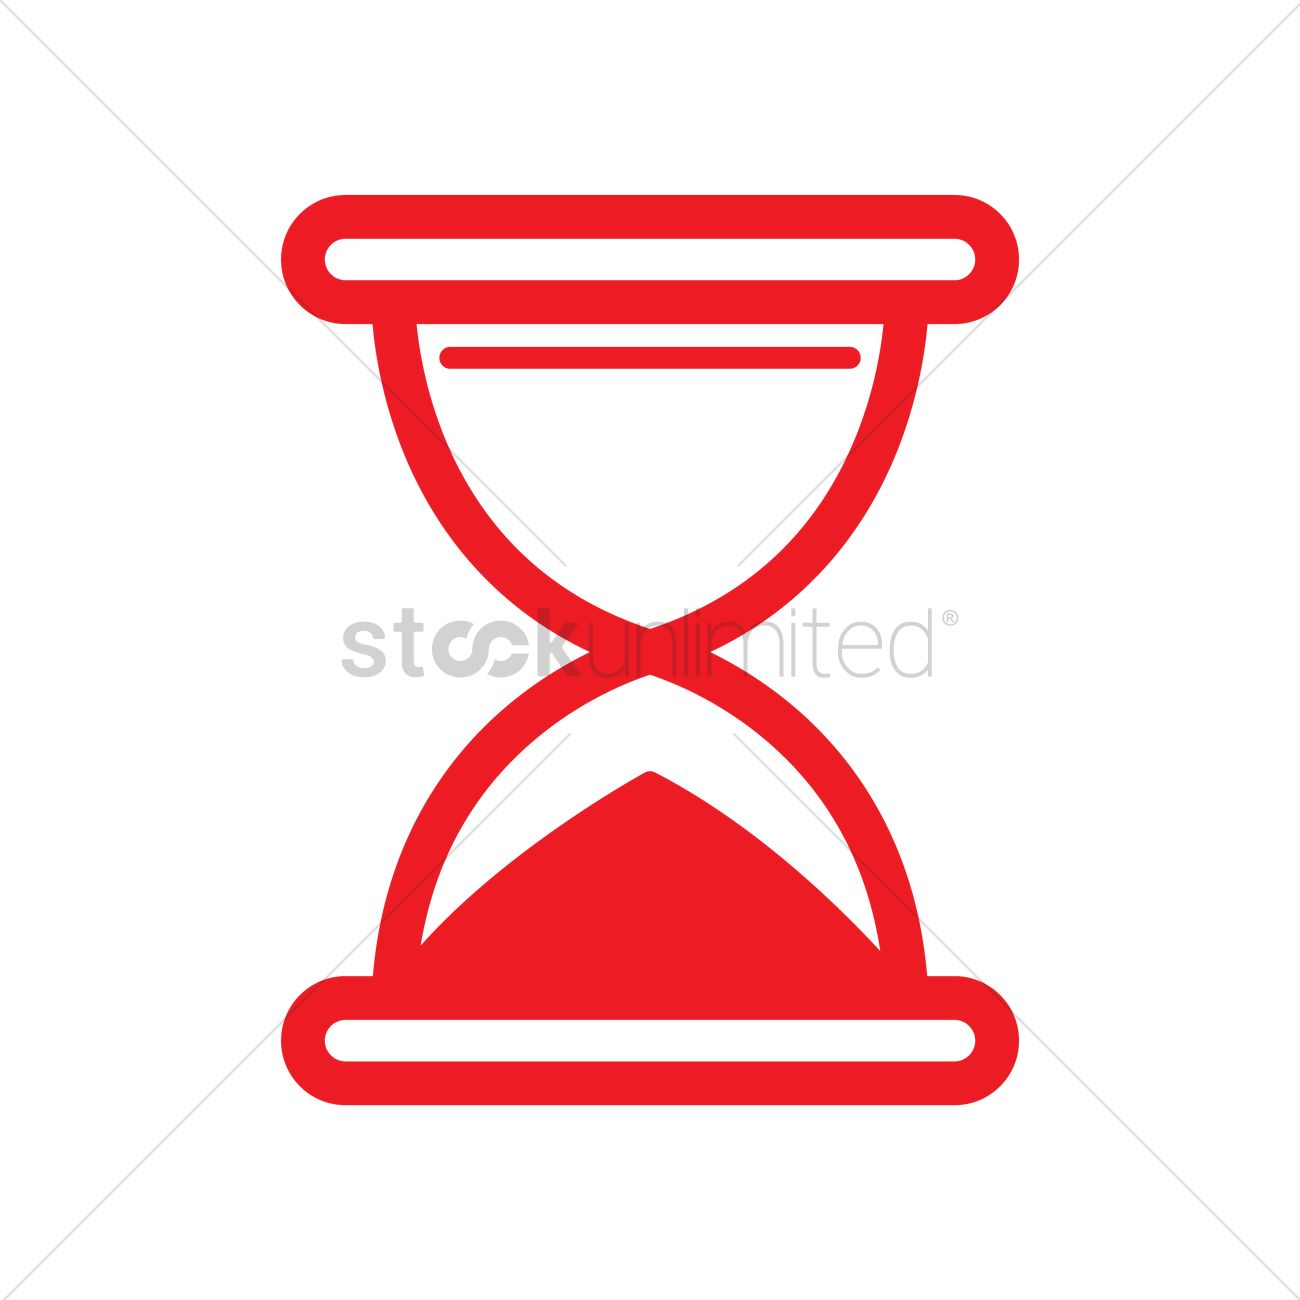 Hourglass icon vector image 1999504 stockunlimited hourglass icon vector graphic biocorpaavc Images